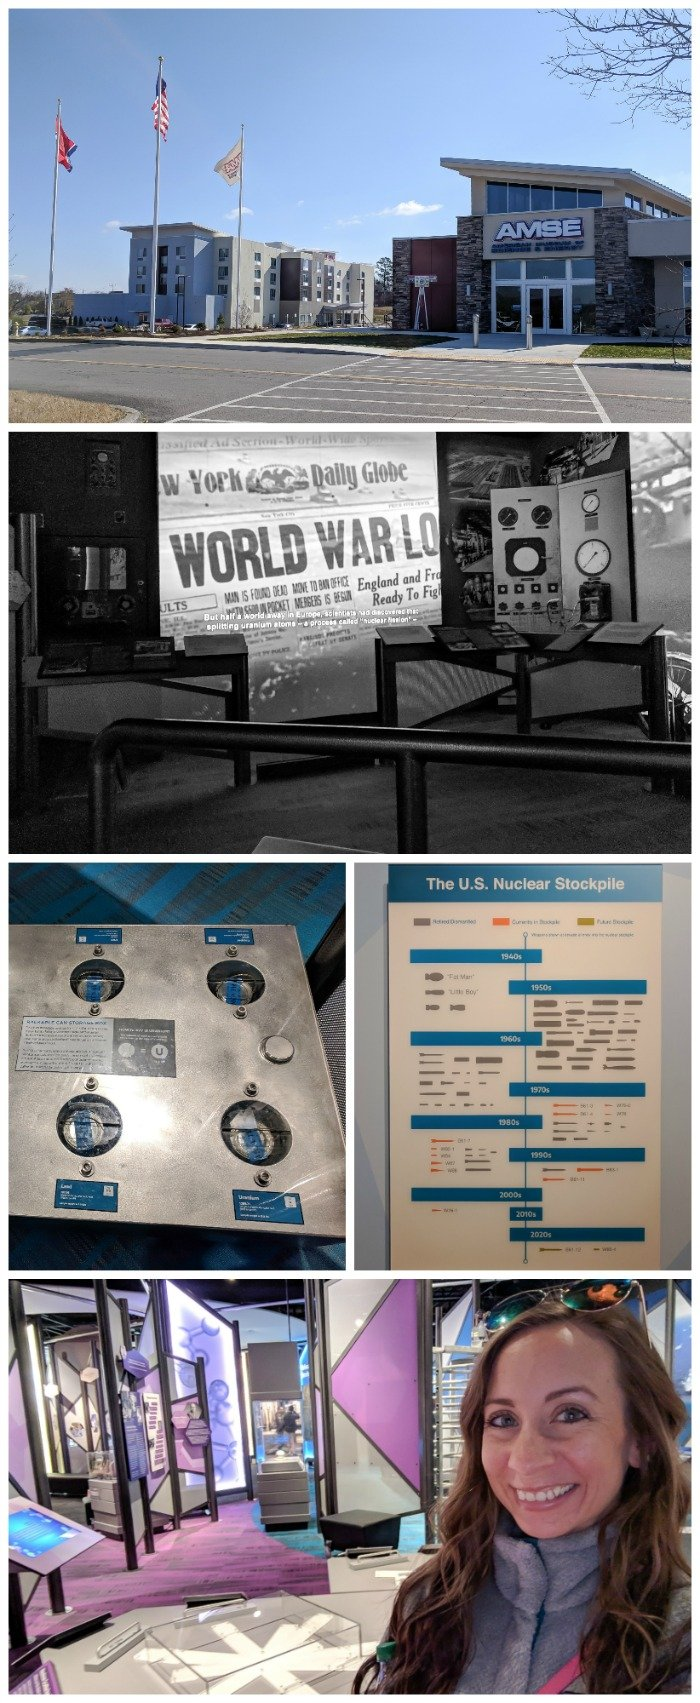 American Museum of Science and Energy | 7 Ways to Spend a Day in Oak Ridge, Tennessee | Manhattan Project | Atomic bomb | World War II | Department of Energy | Y-12, X-10 graphite reactor | #Oakridge #WWII #manhattanproject #tennessee